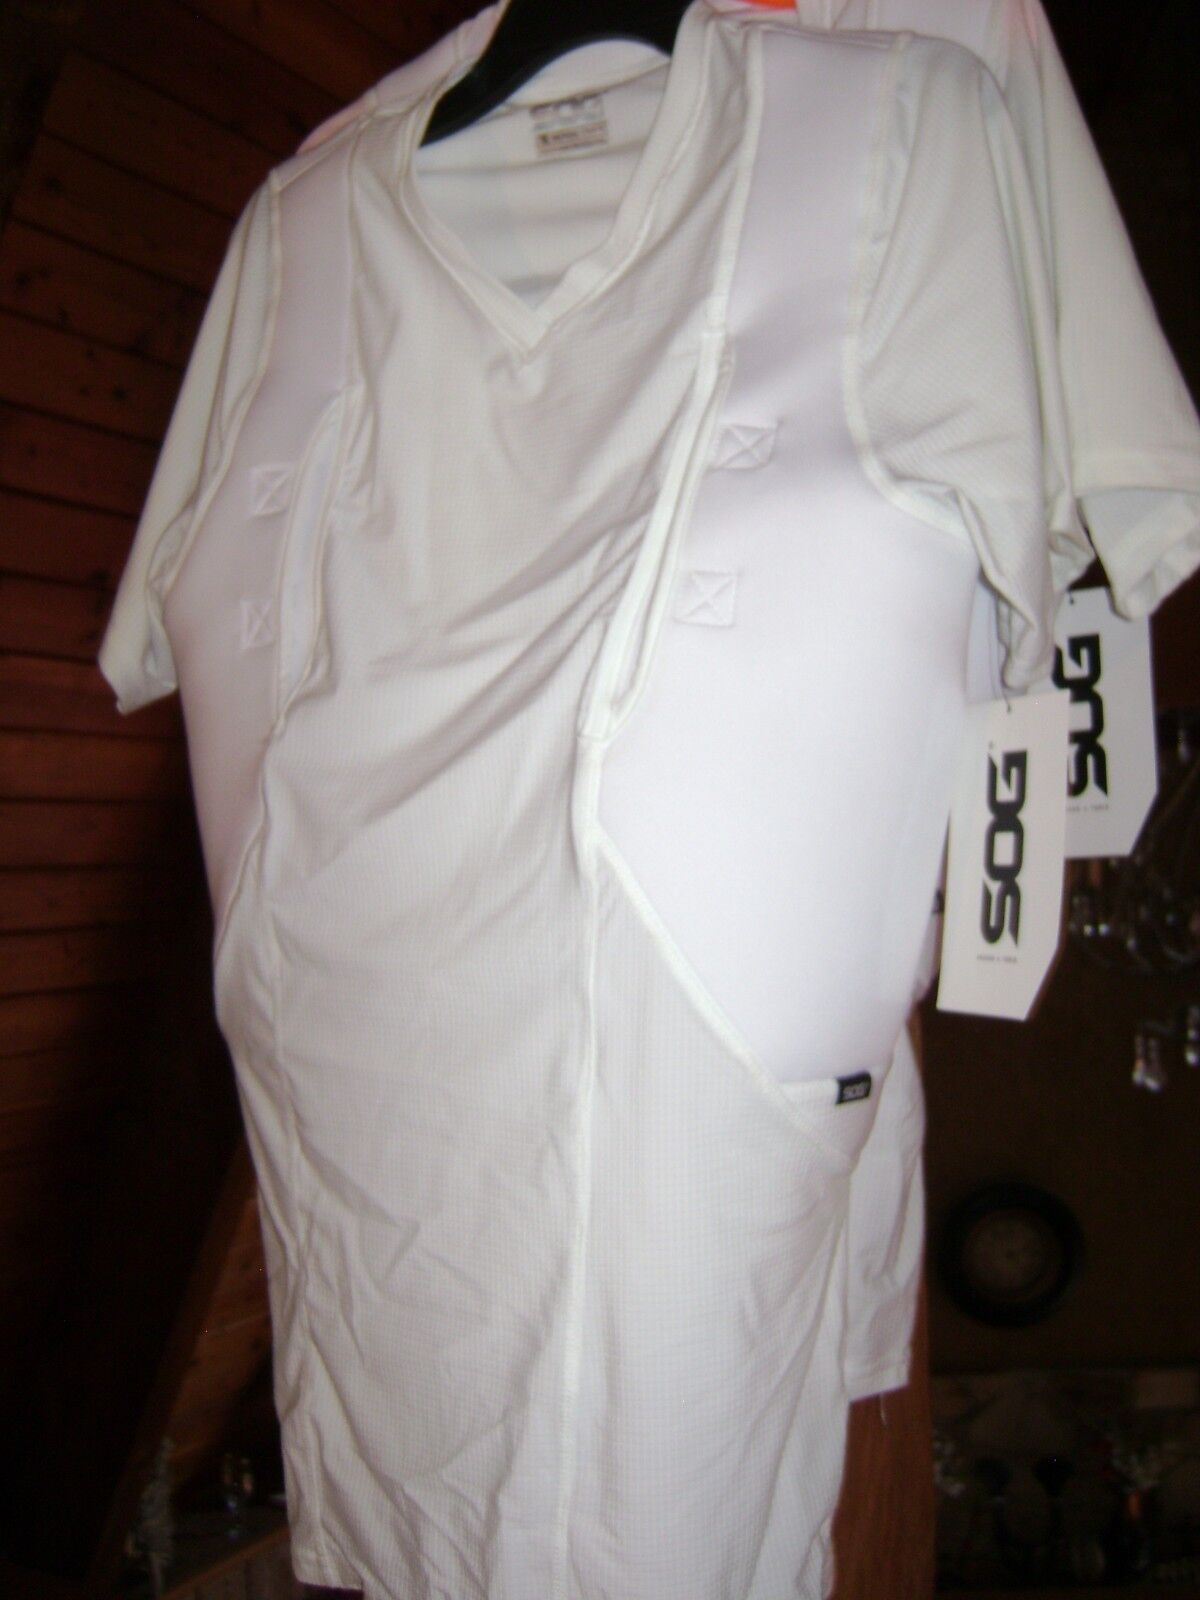 2sog   white sog tactical concealed weapon shirts, 1 lrg. 1 xlrg. both brand new   store sale outlet